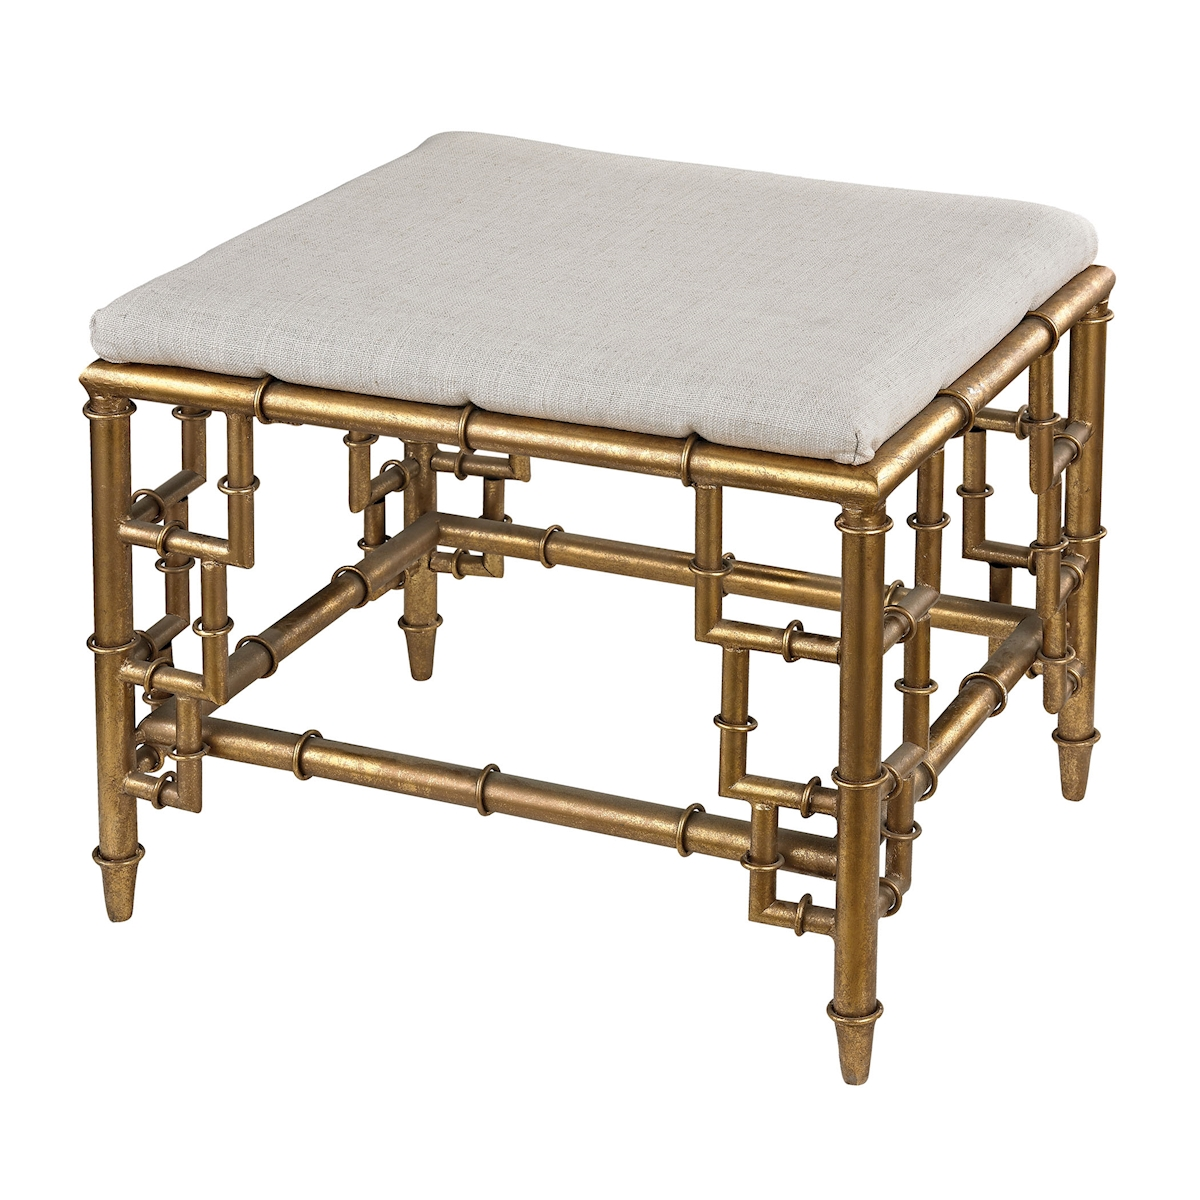 Stool with Bamboo Frame in Gold Leaf and Linen Seat | Elk Home